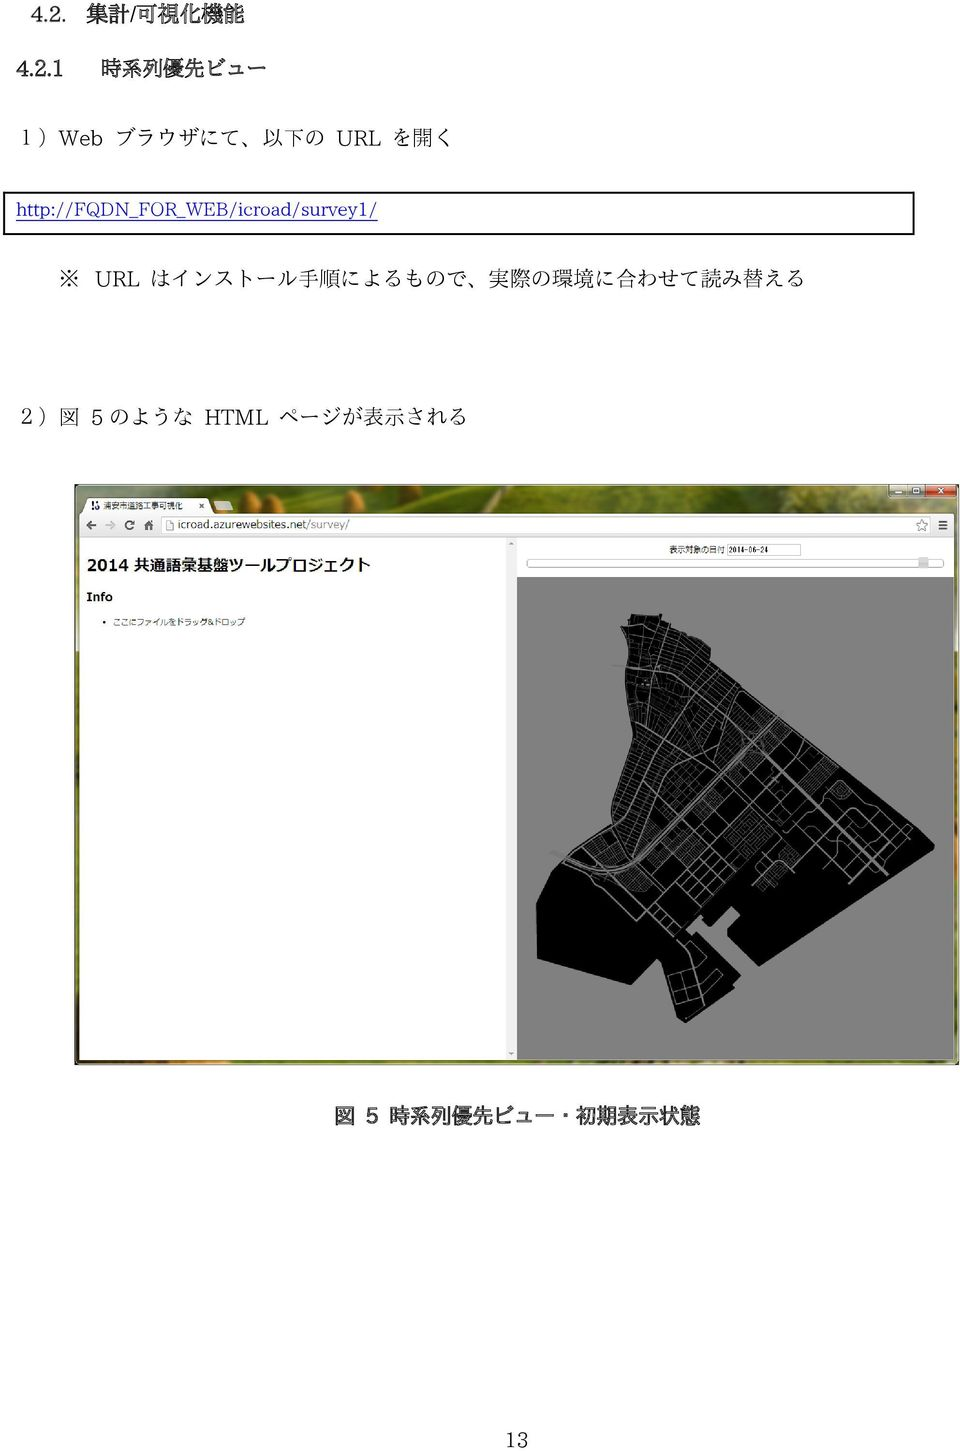 http://fqdn_for_web/icroad/survey1/ URL はインストール 手 順